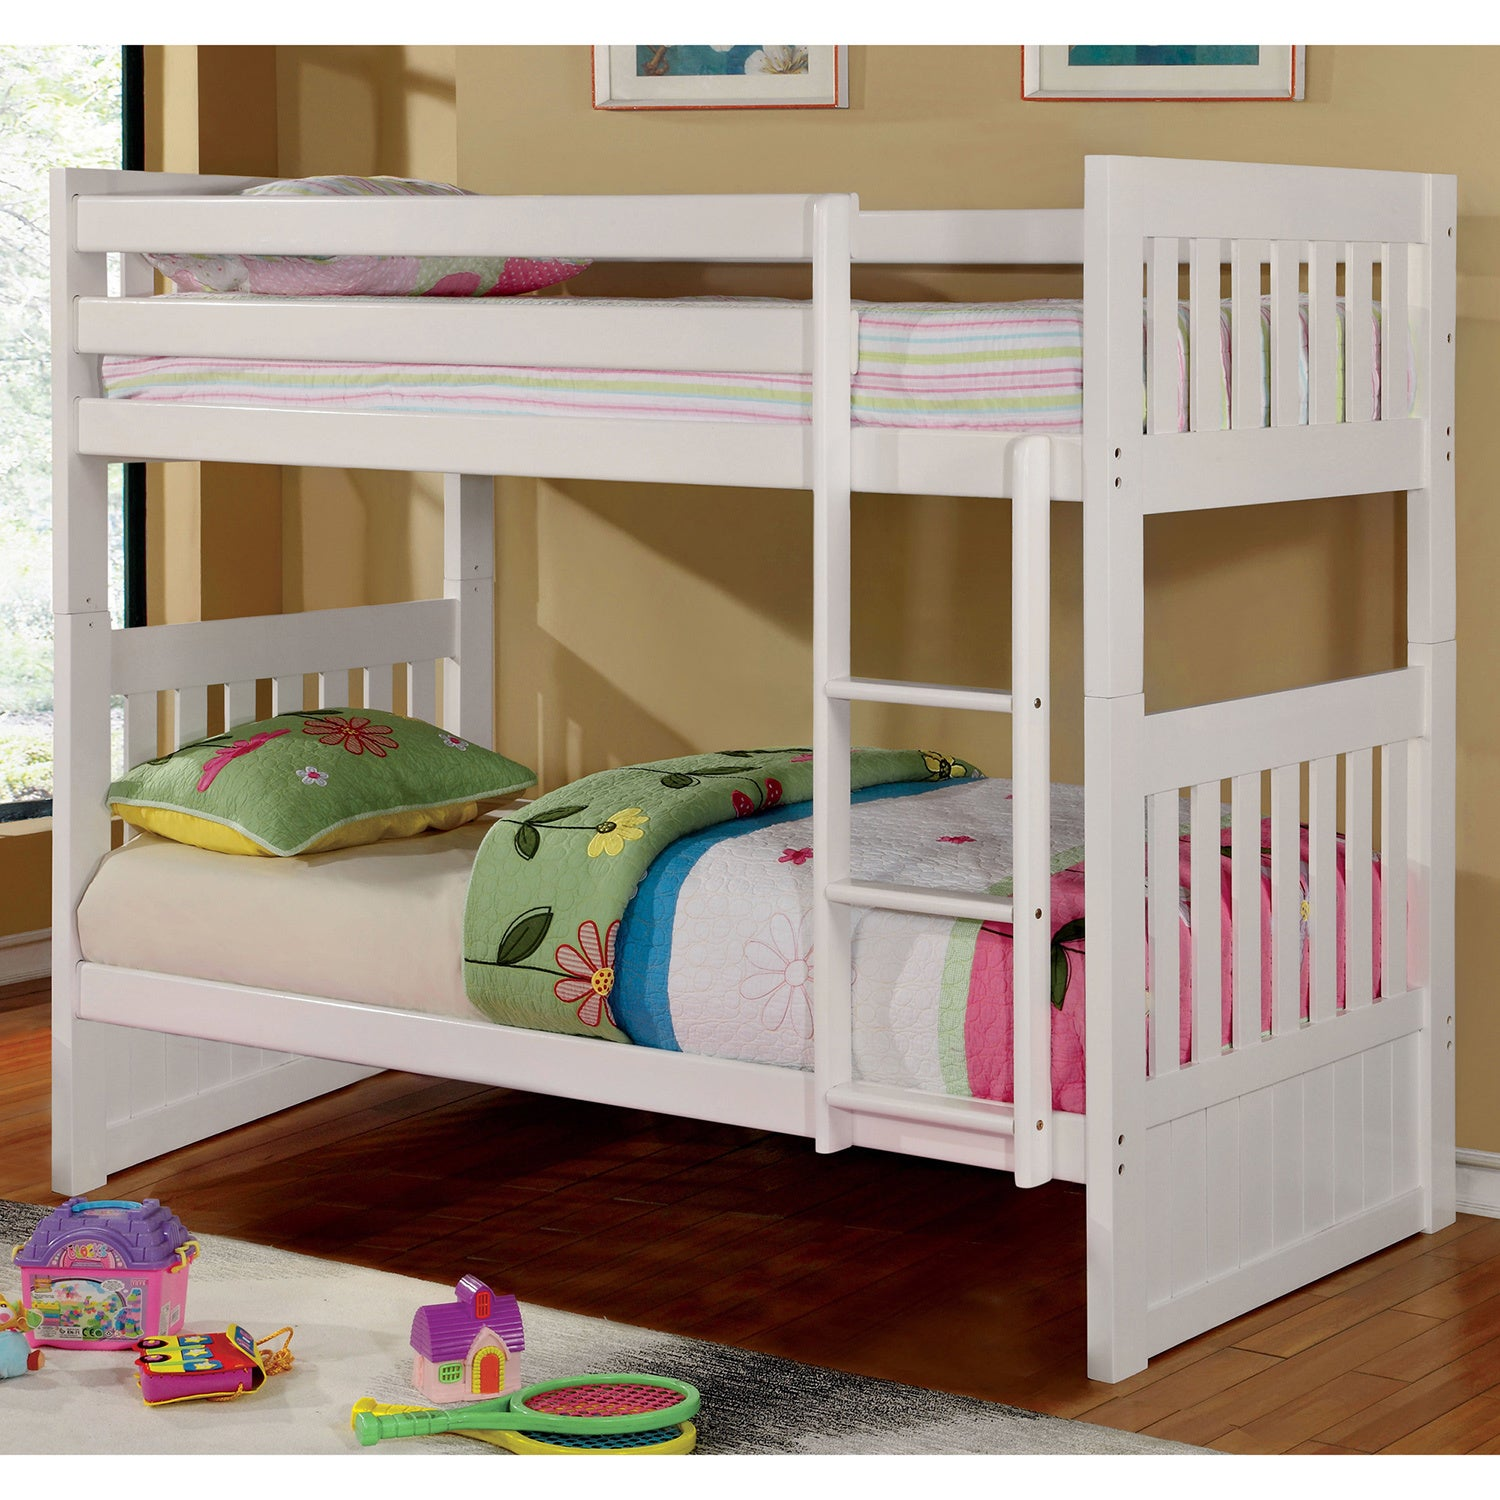 Furniture of America Raline Mission Style White Twin/ Twi...